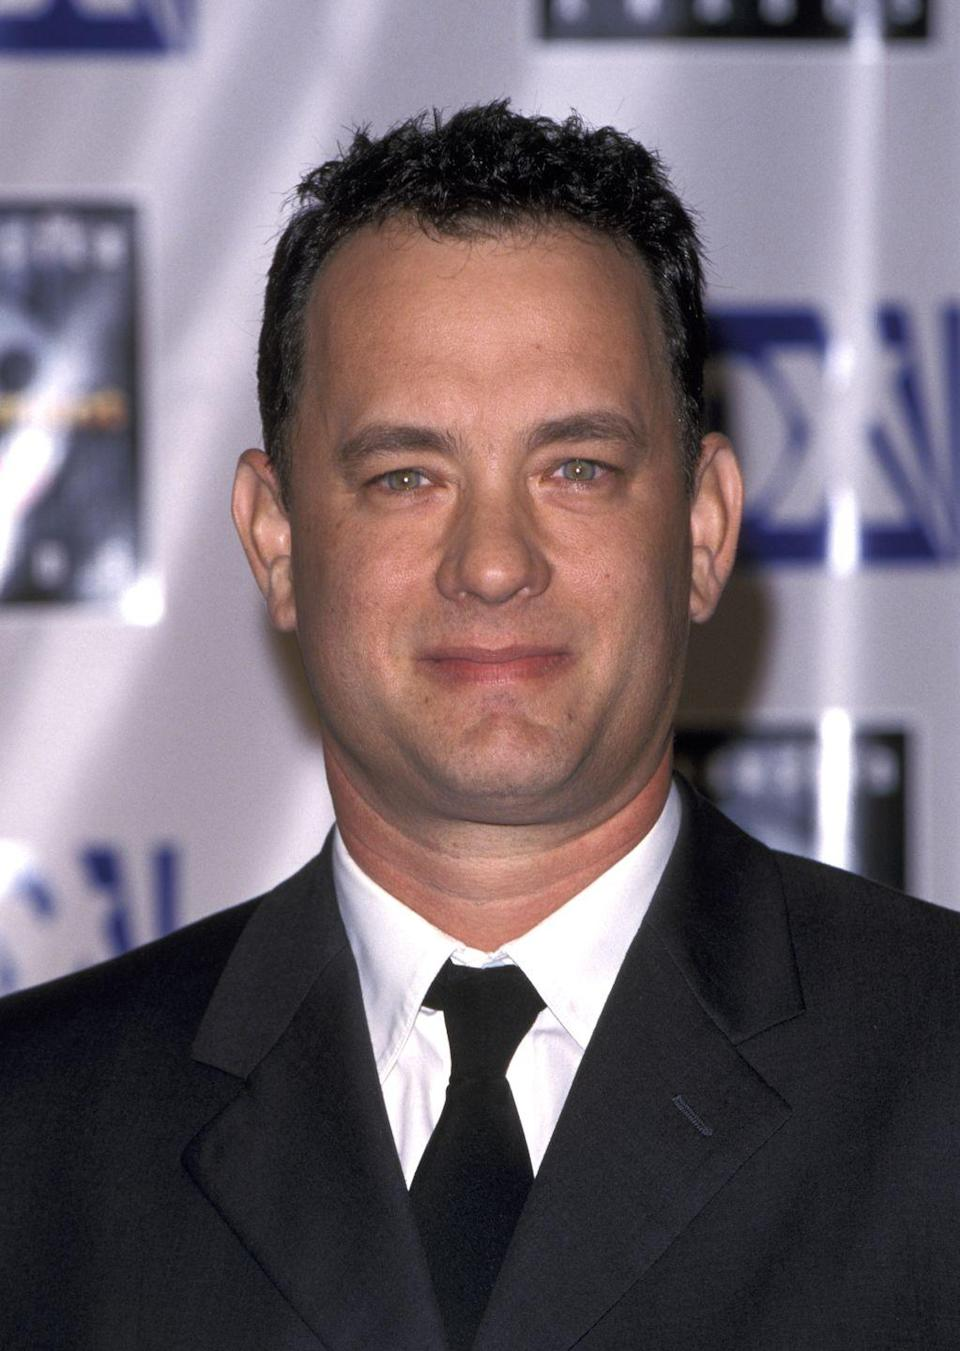 <p>A clean cut Tom Hanks is one that America is used to and loves. So if it ain't broke, don't fix it, right?</p>